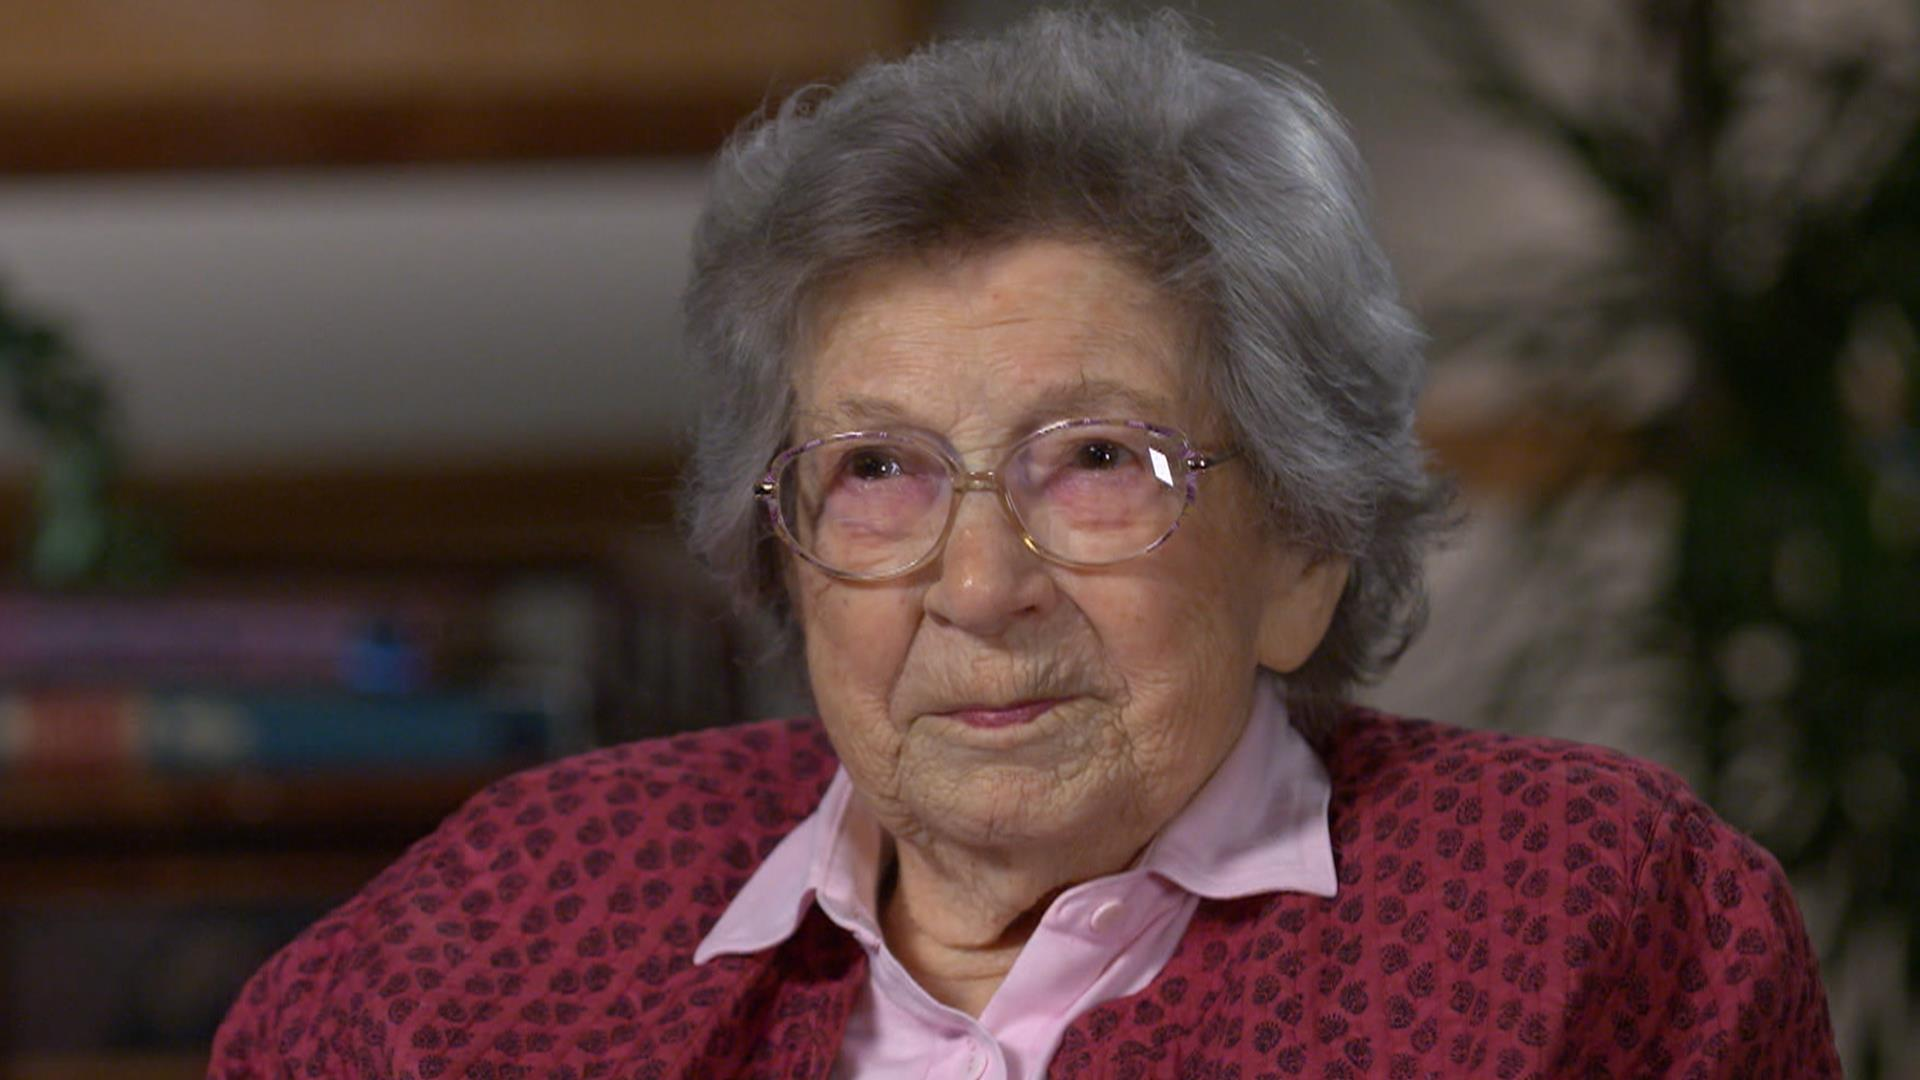 Children's Author Beverly Cleary On Turning 100: 'I Didn't